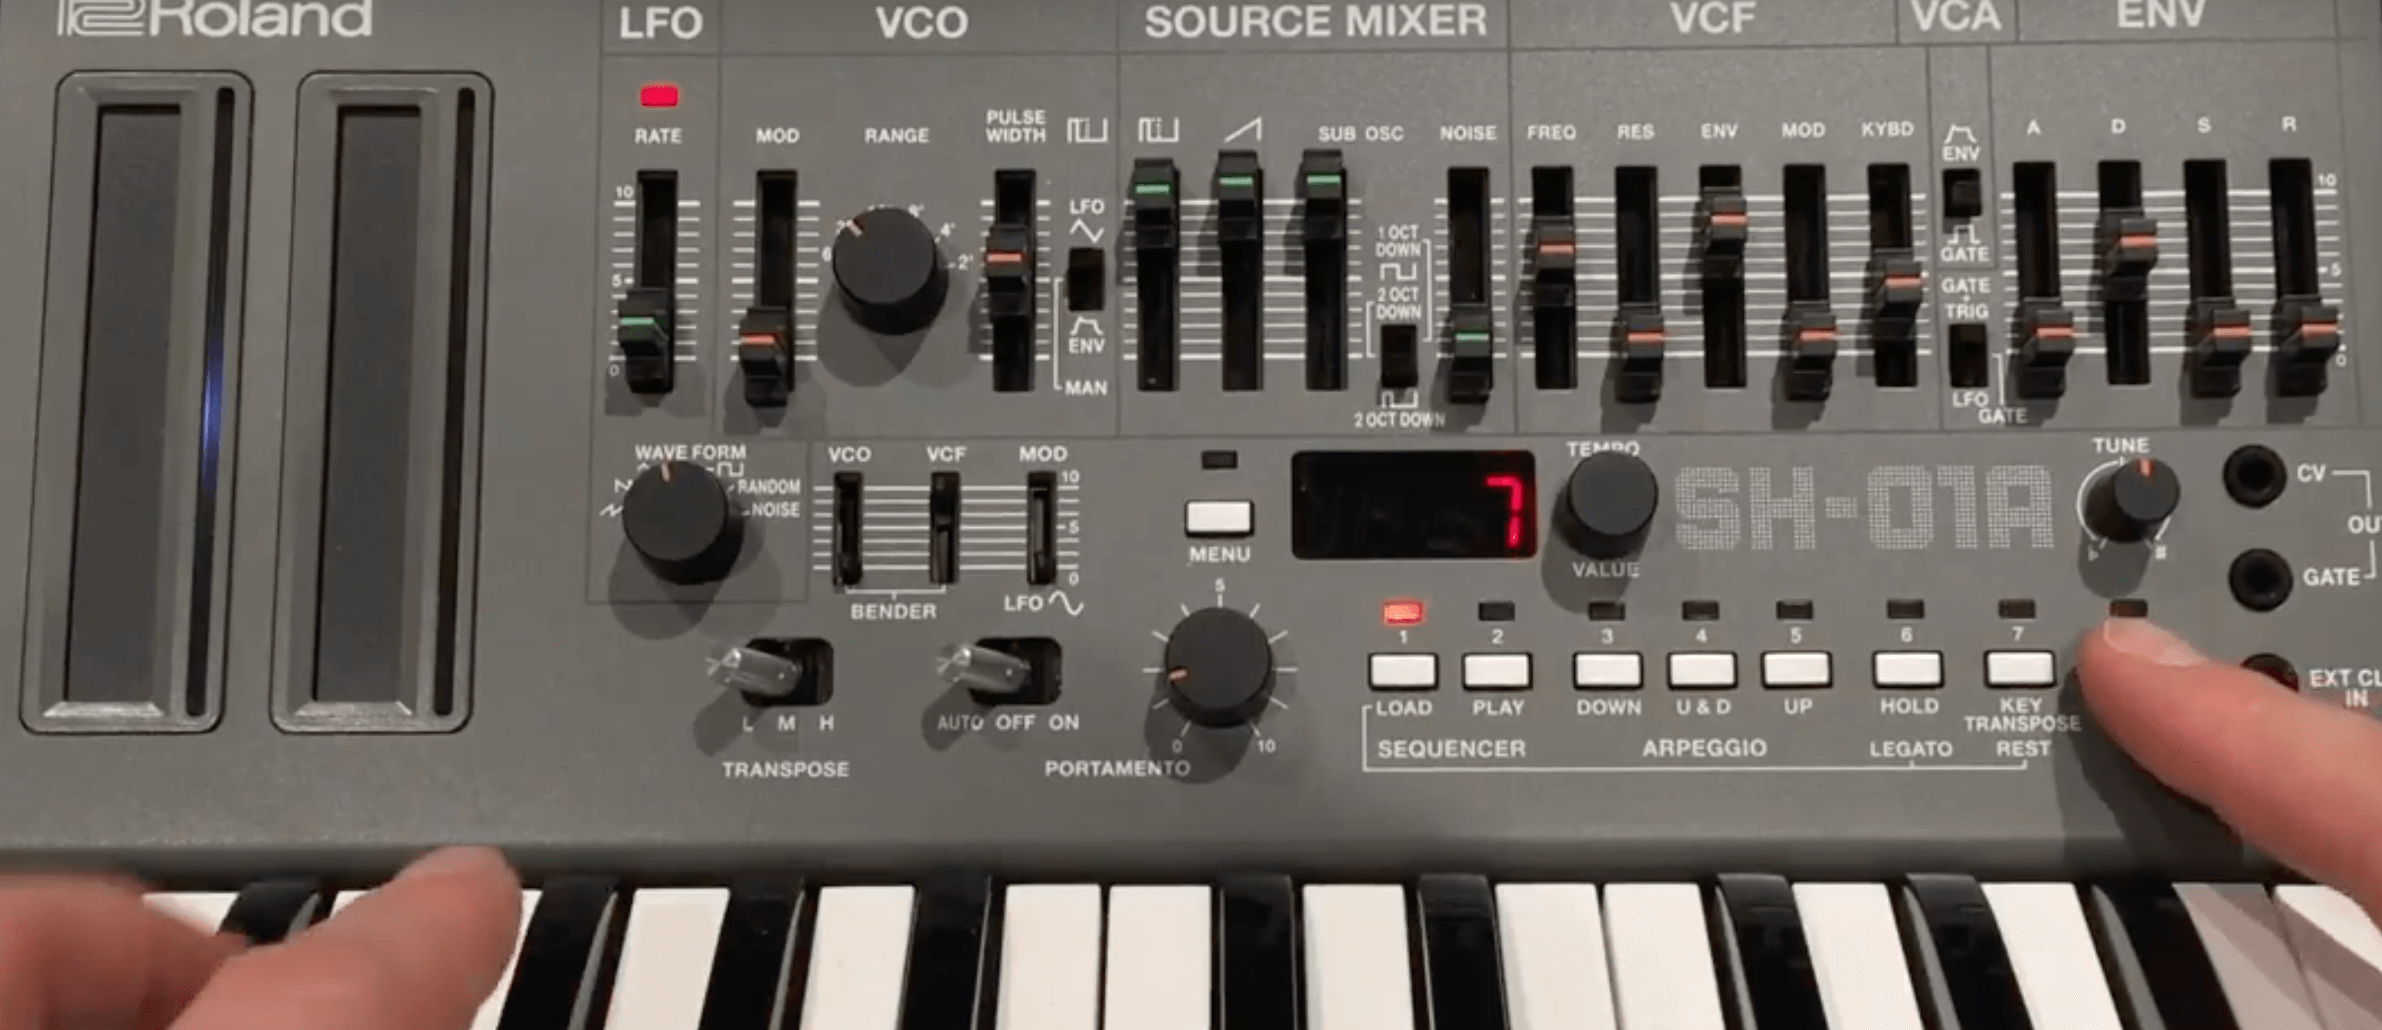 Roland SH-01a review, hidden features and sound demo